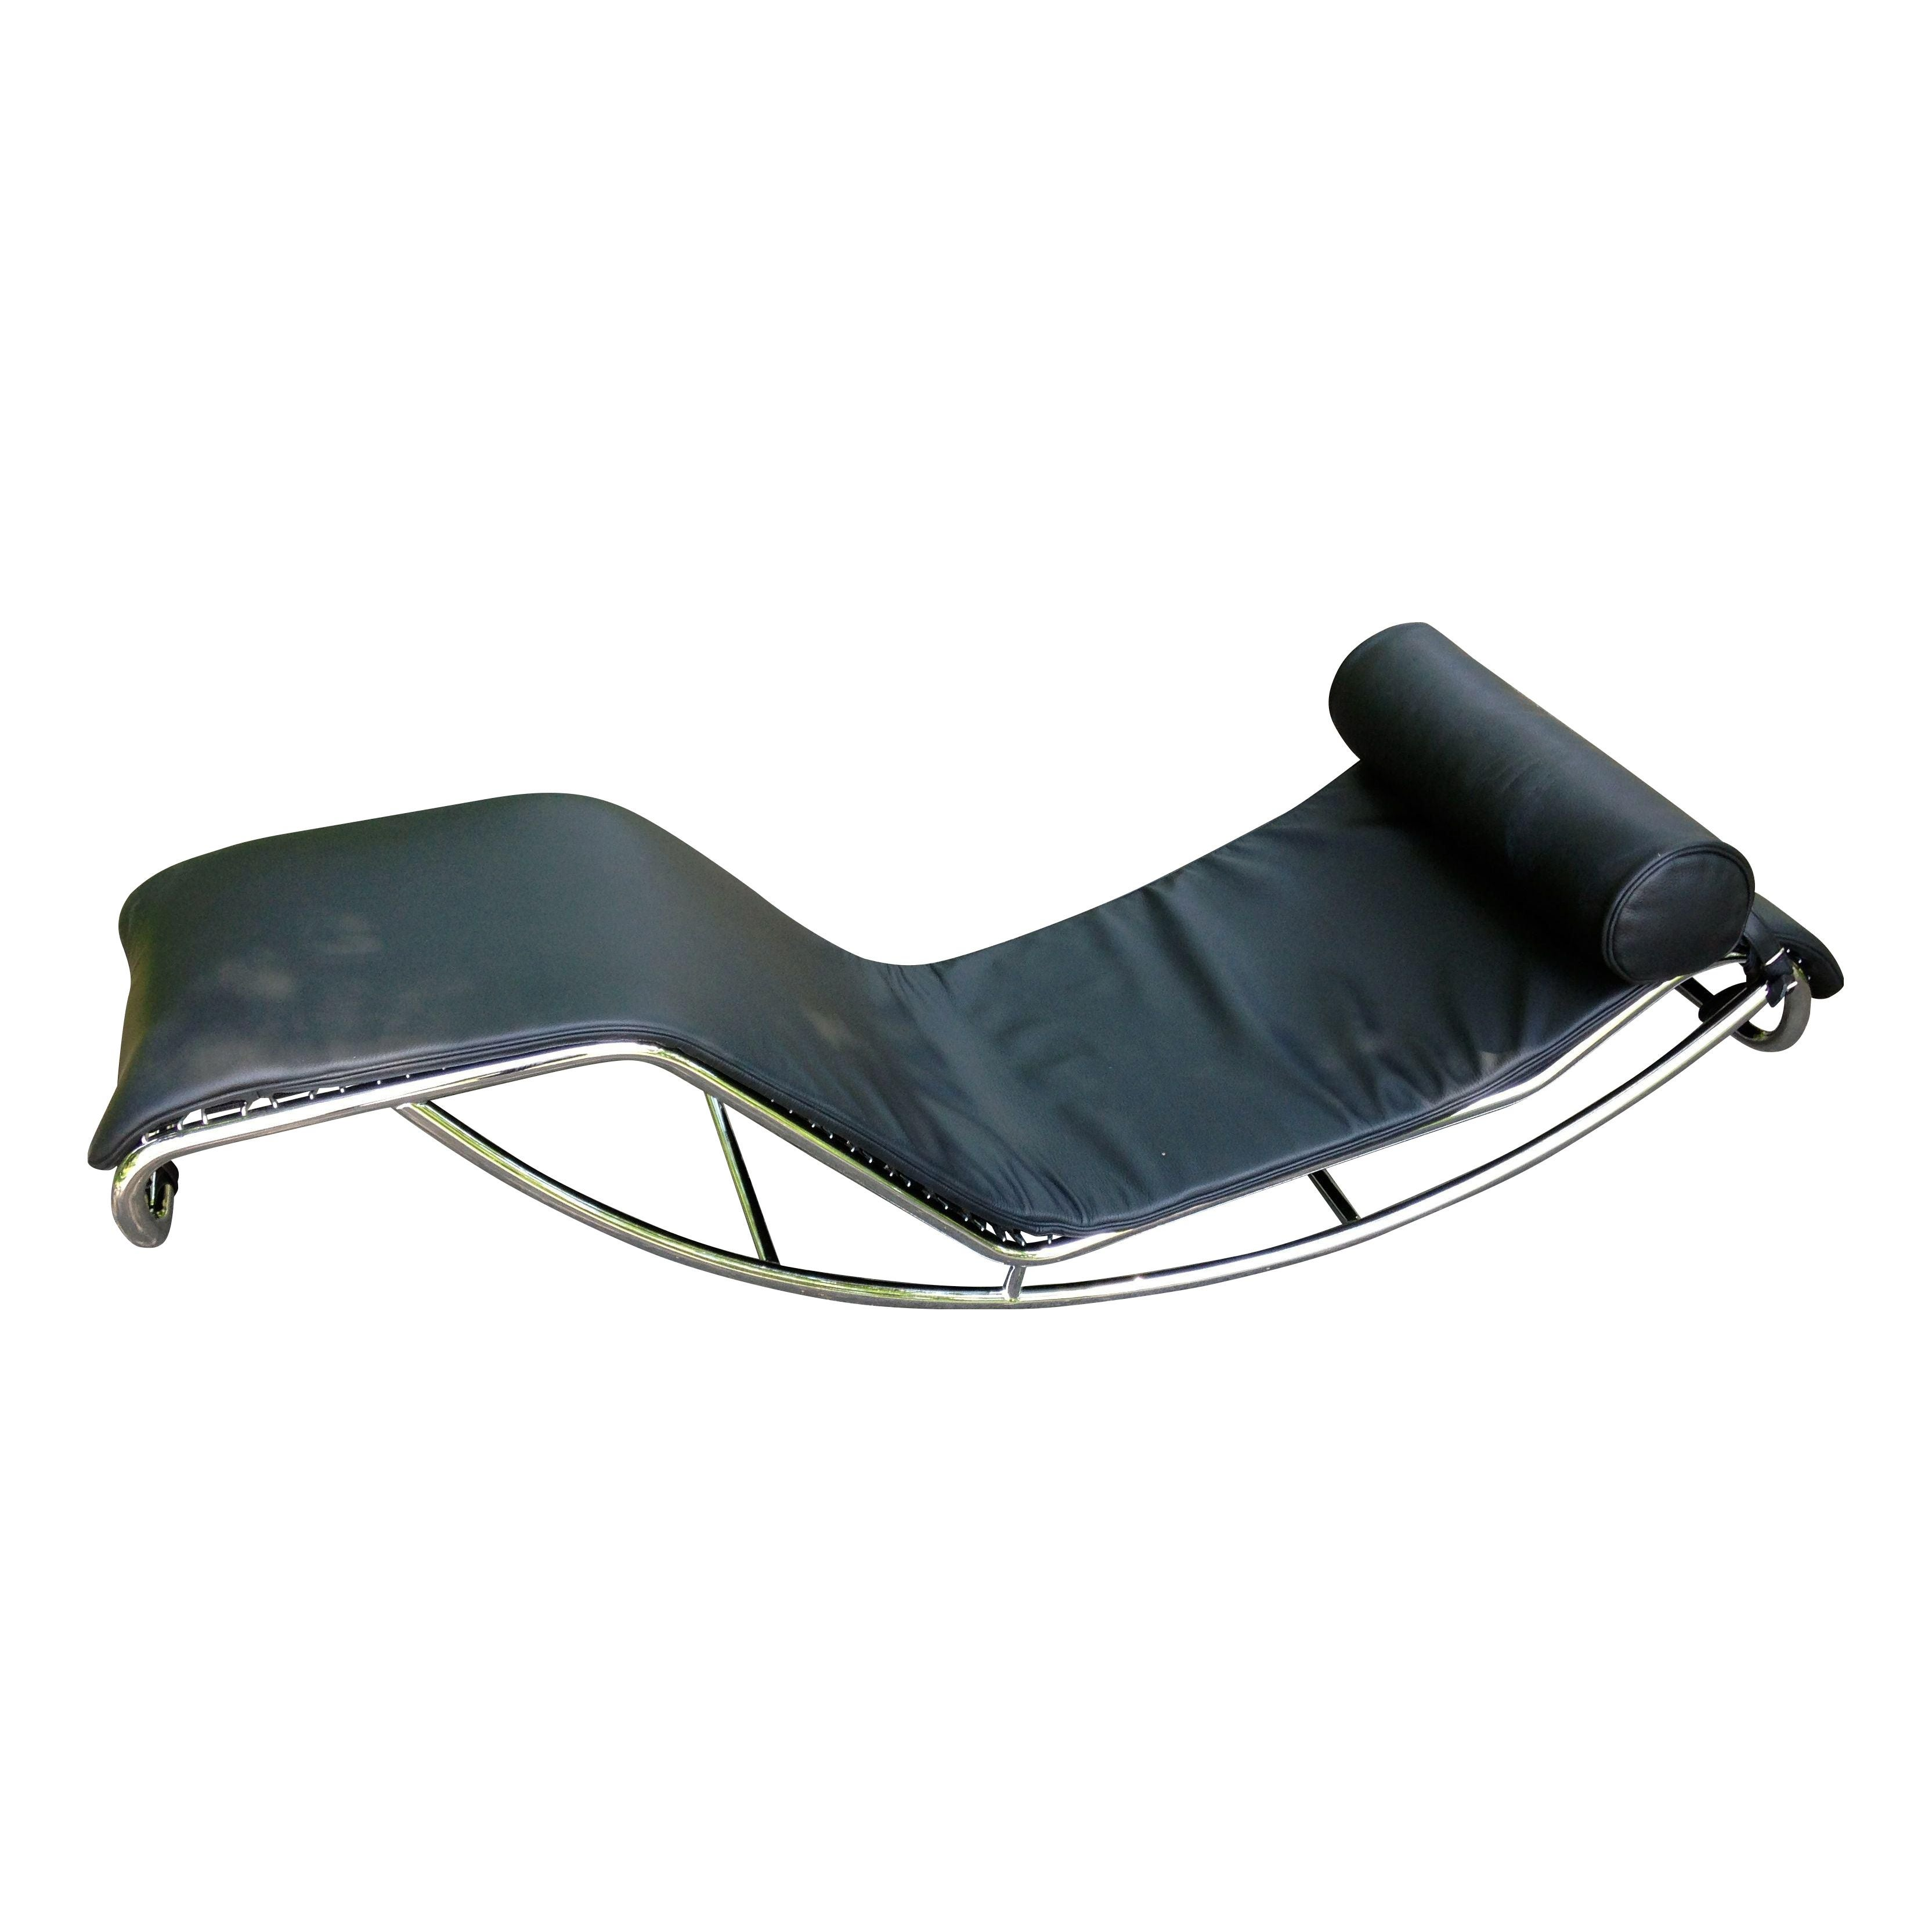 le corbusier lc4 chaise longue style chair chairish